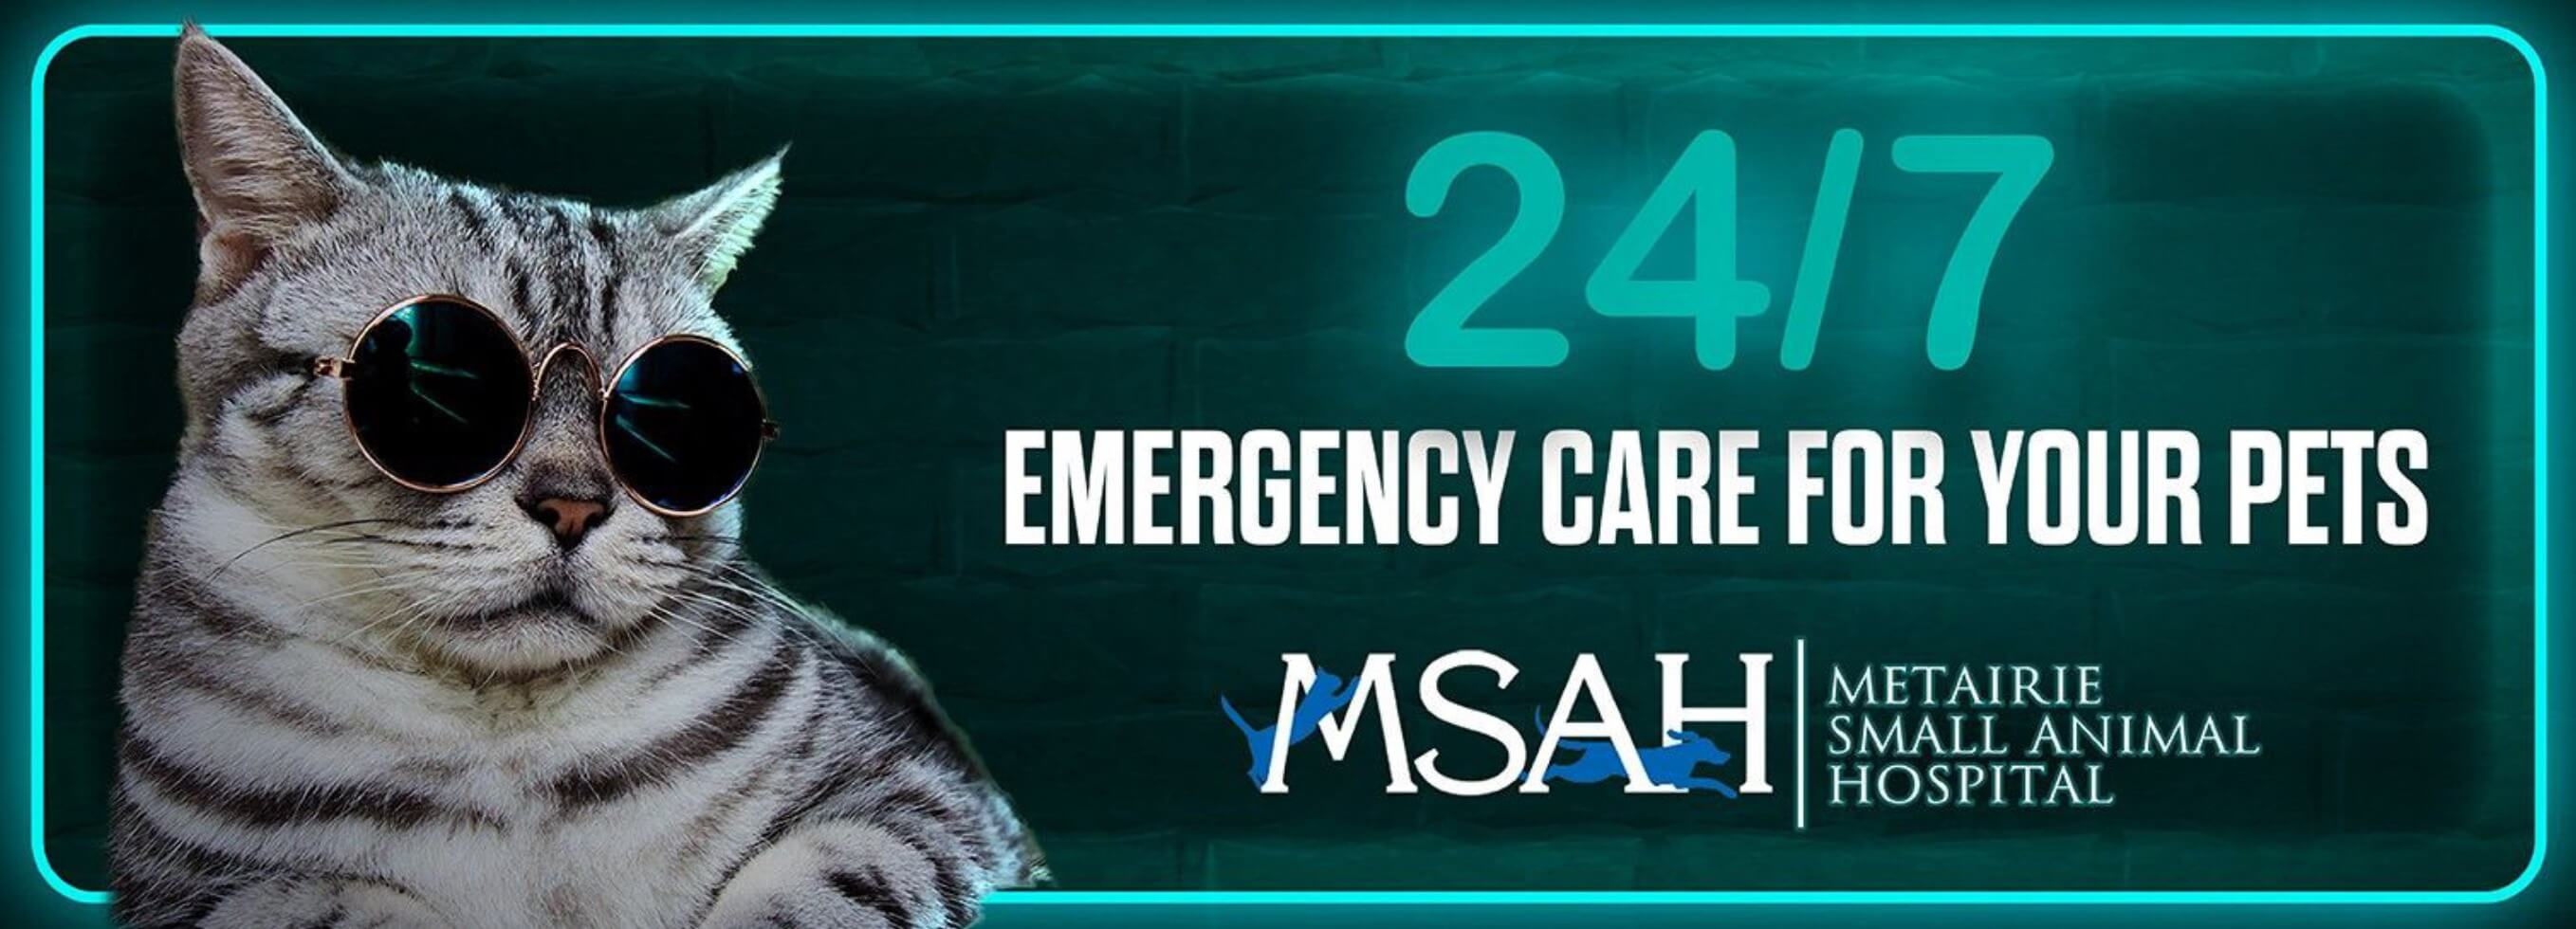 Emergency Vet Care